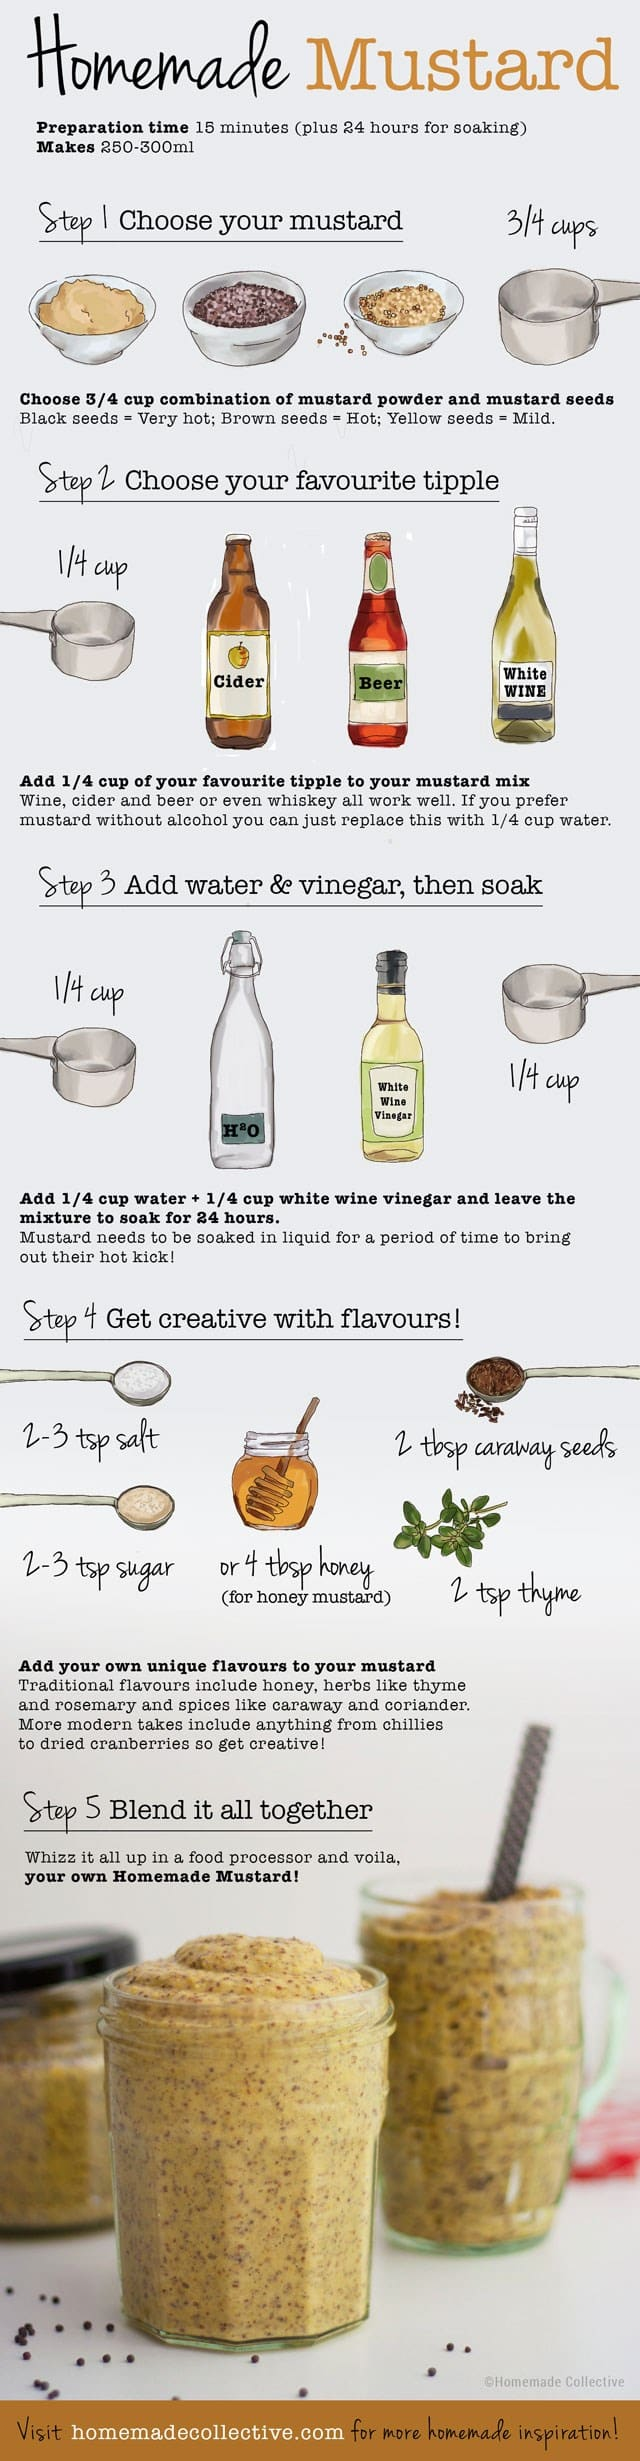 Homemade-Mustard_Infographic